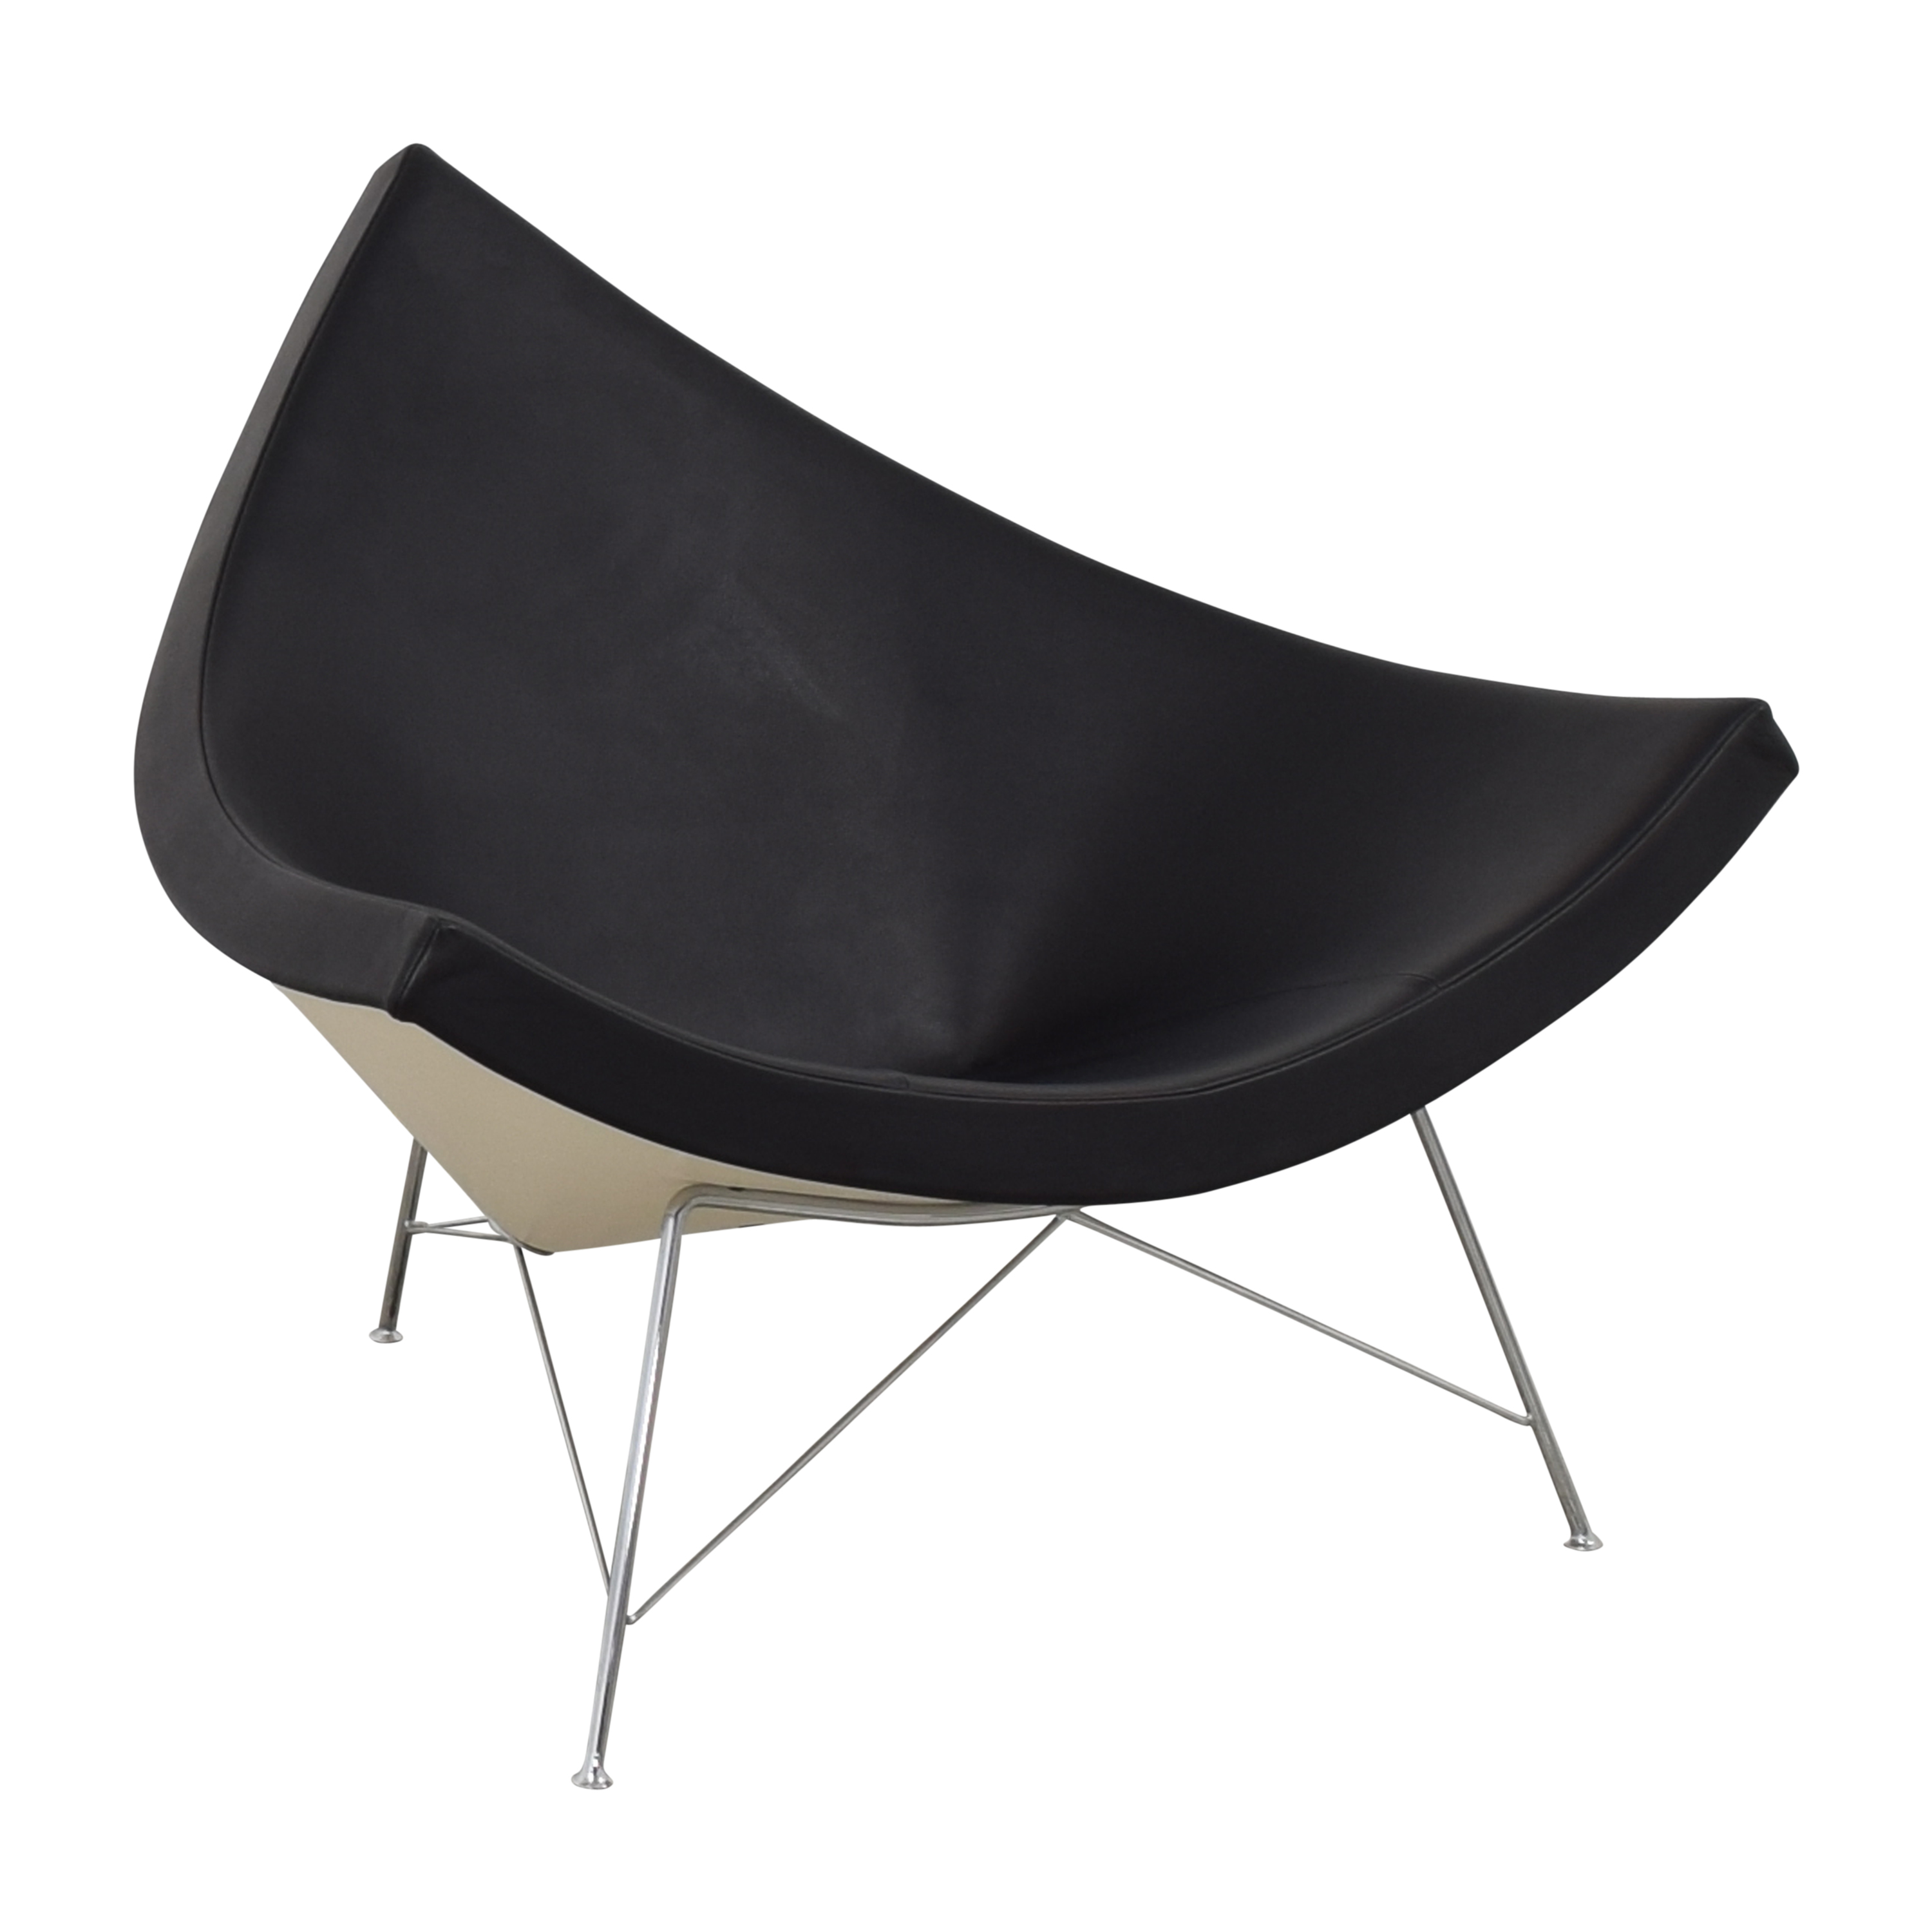 Vitra Vitra George Nelson Coconut Chair dimensions